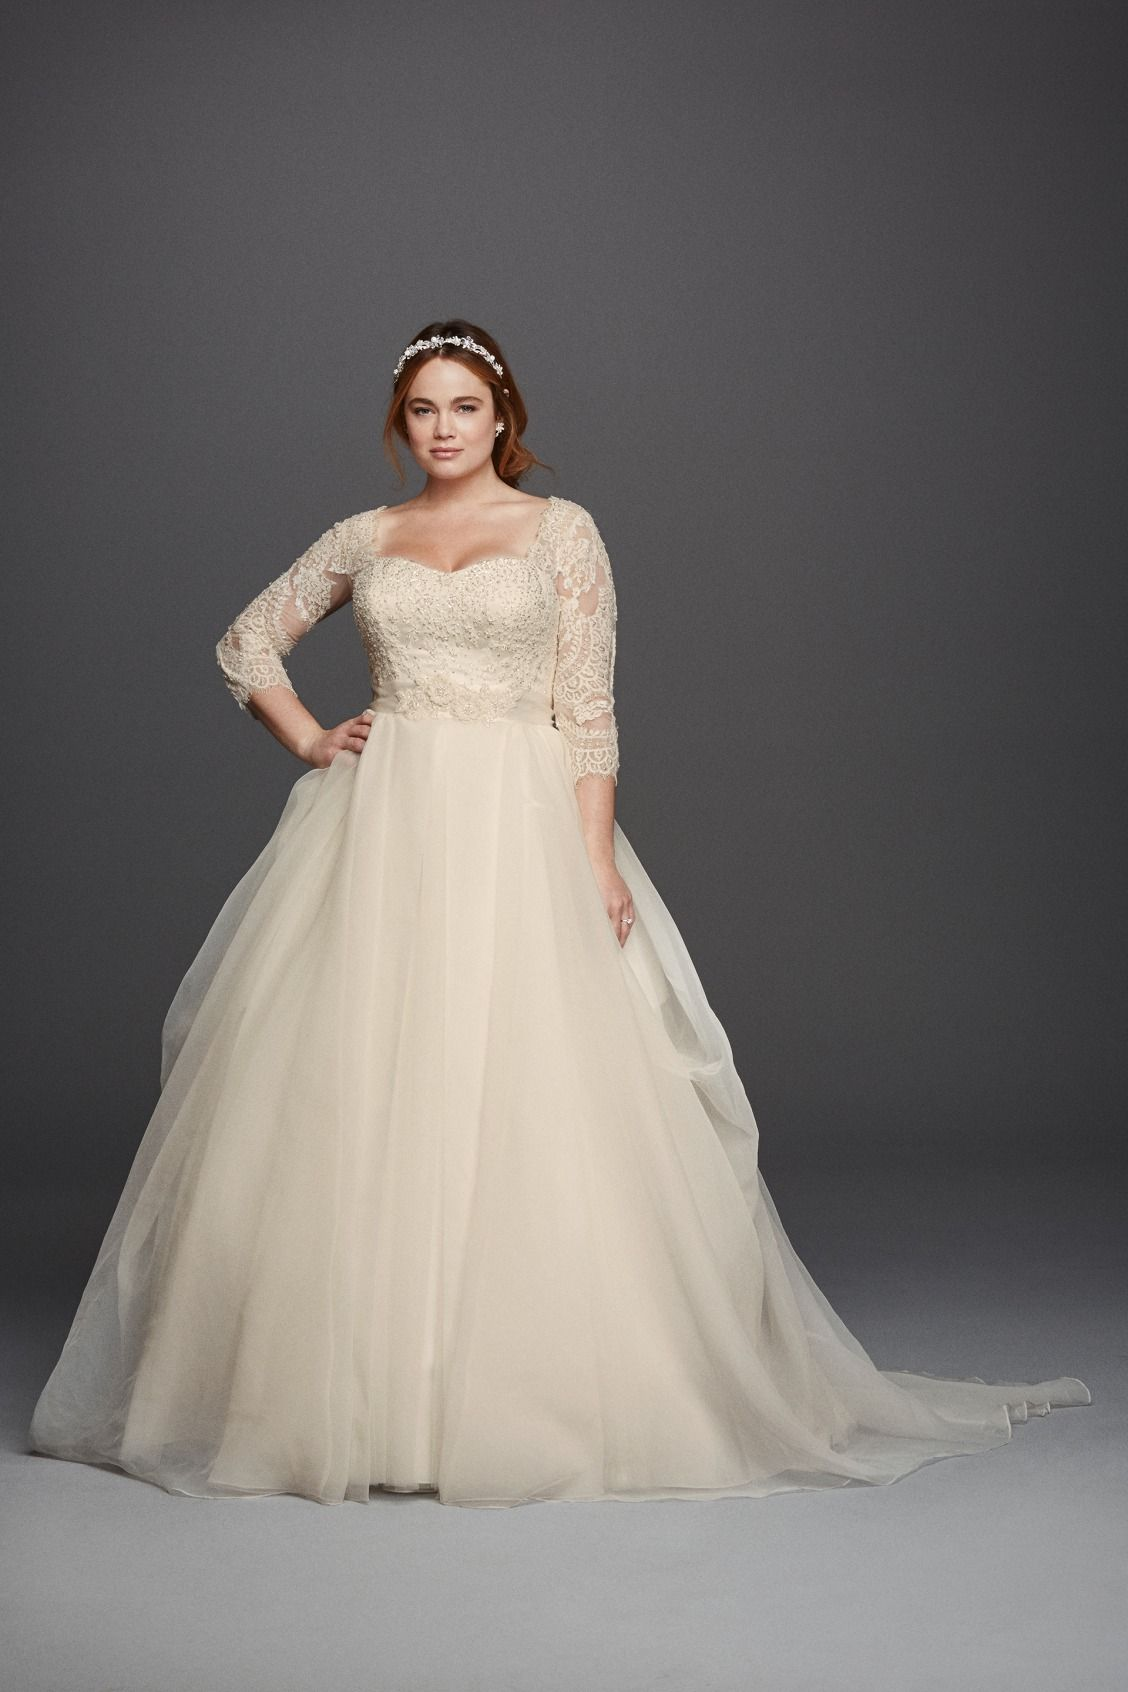 Wedding dresses for plus size brides  Oleg Cassini Plus Size threequarter lace sleeves and a flattering